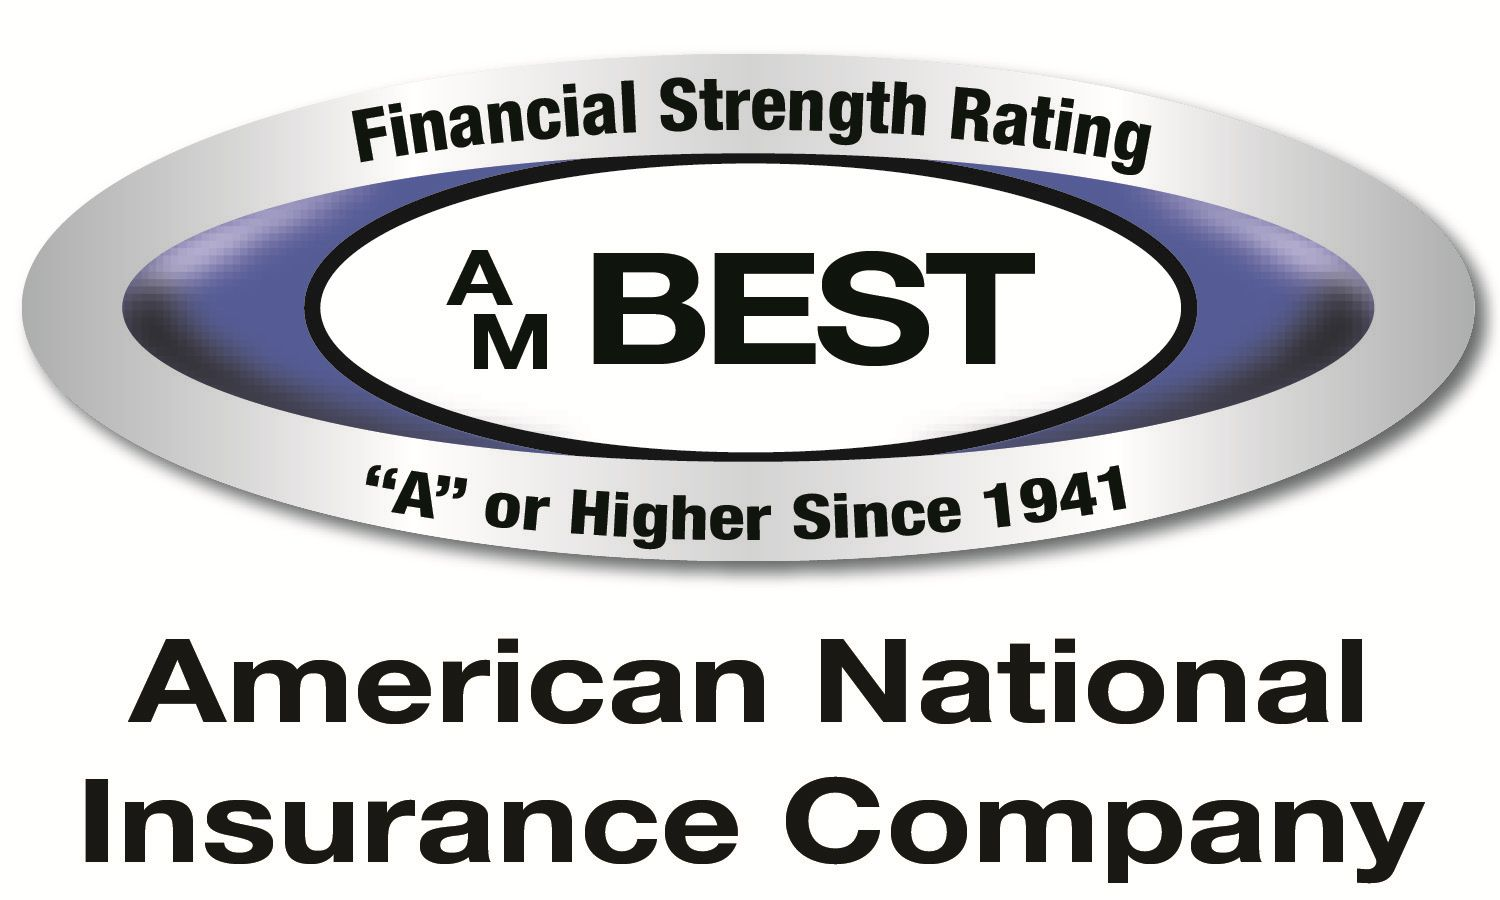 : American National Rated A (EXCELLENT) or Higher by A.M. Best for ...